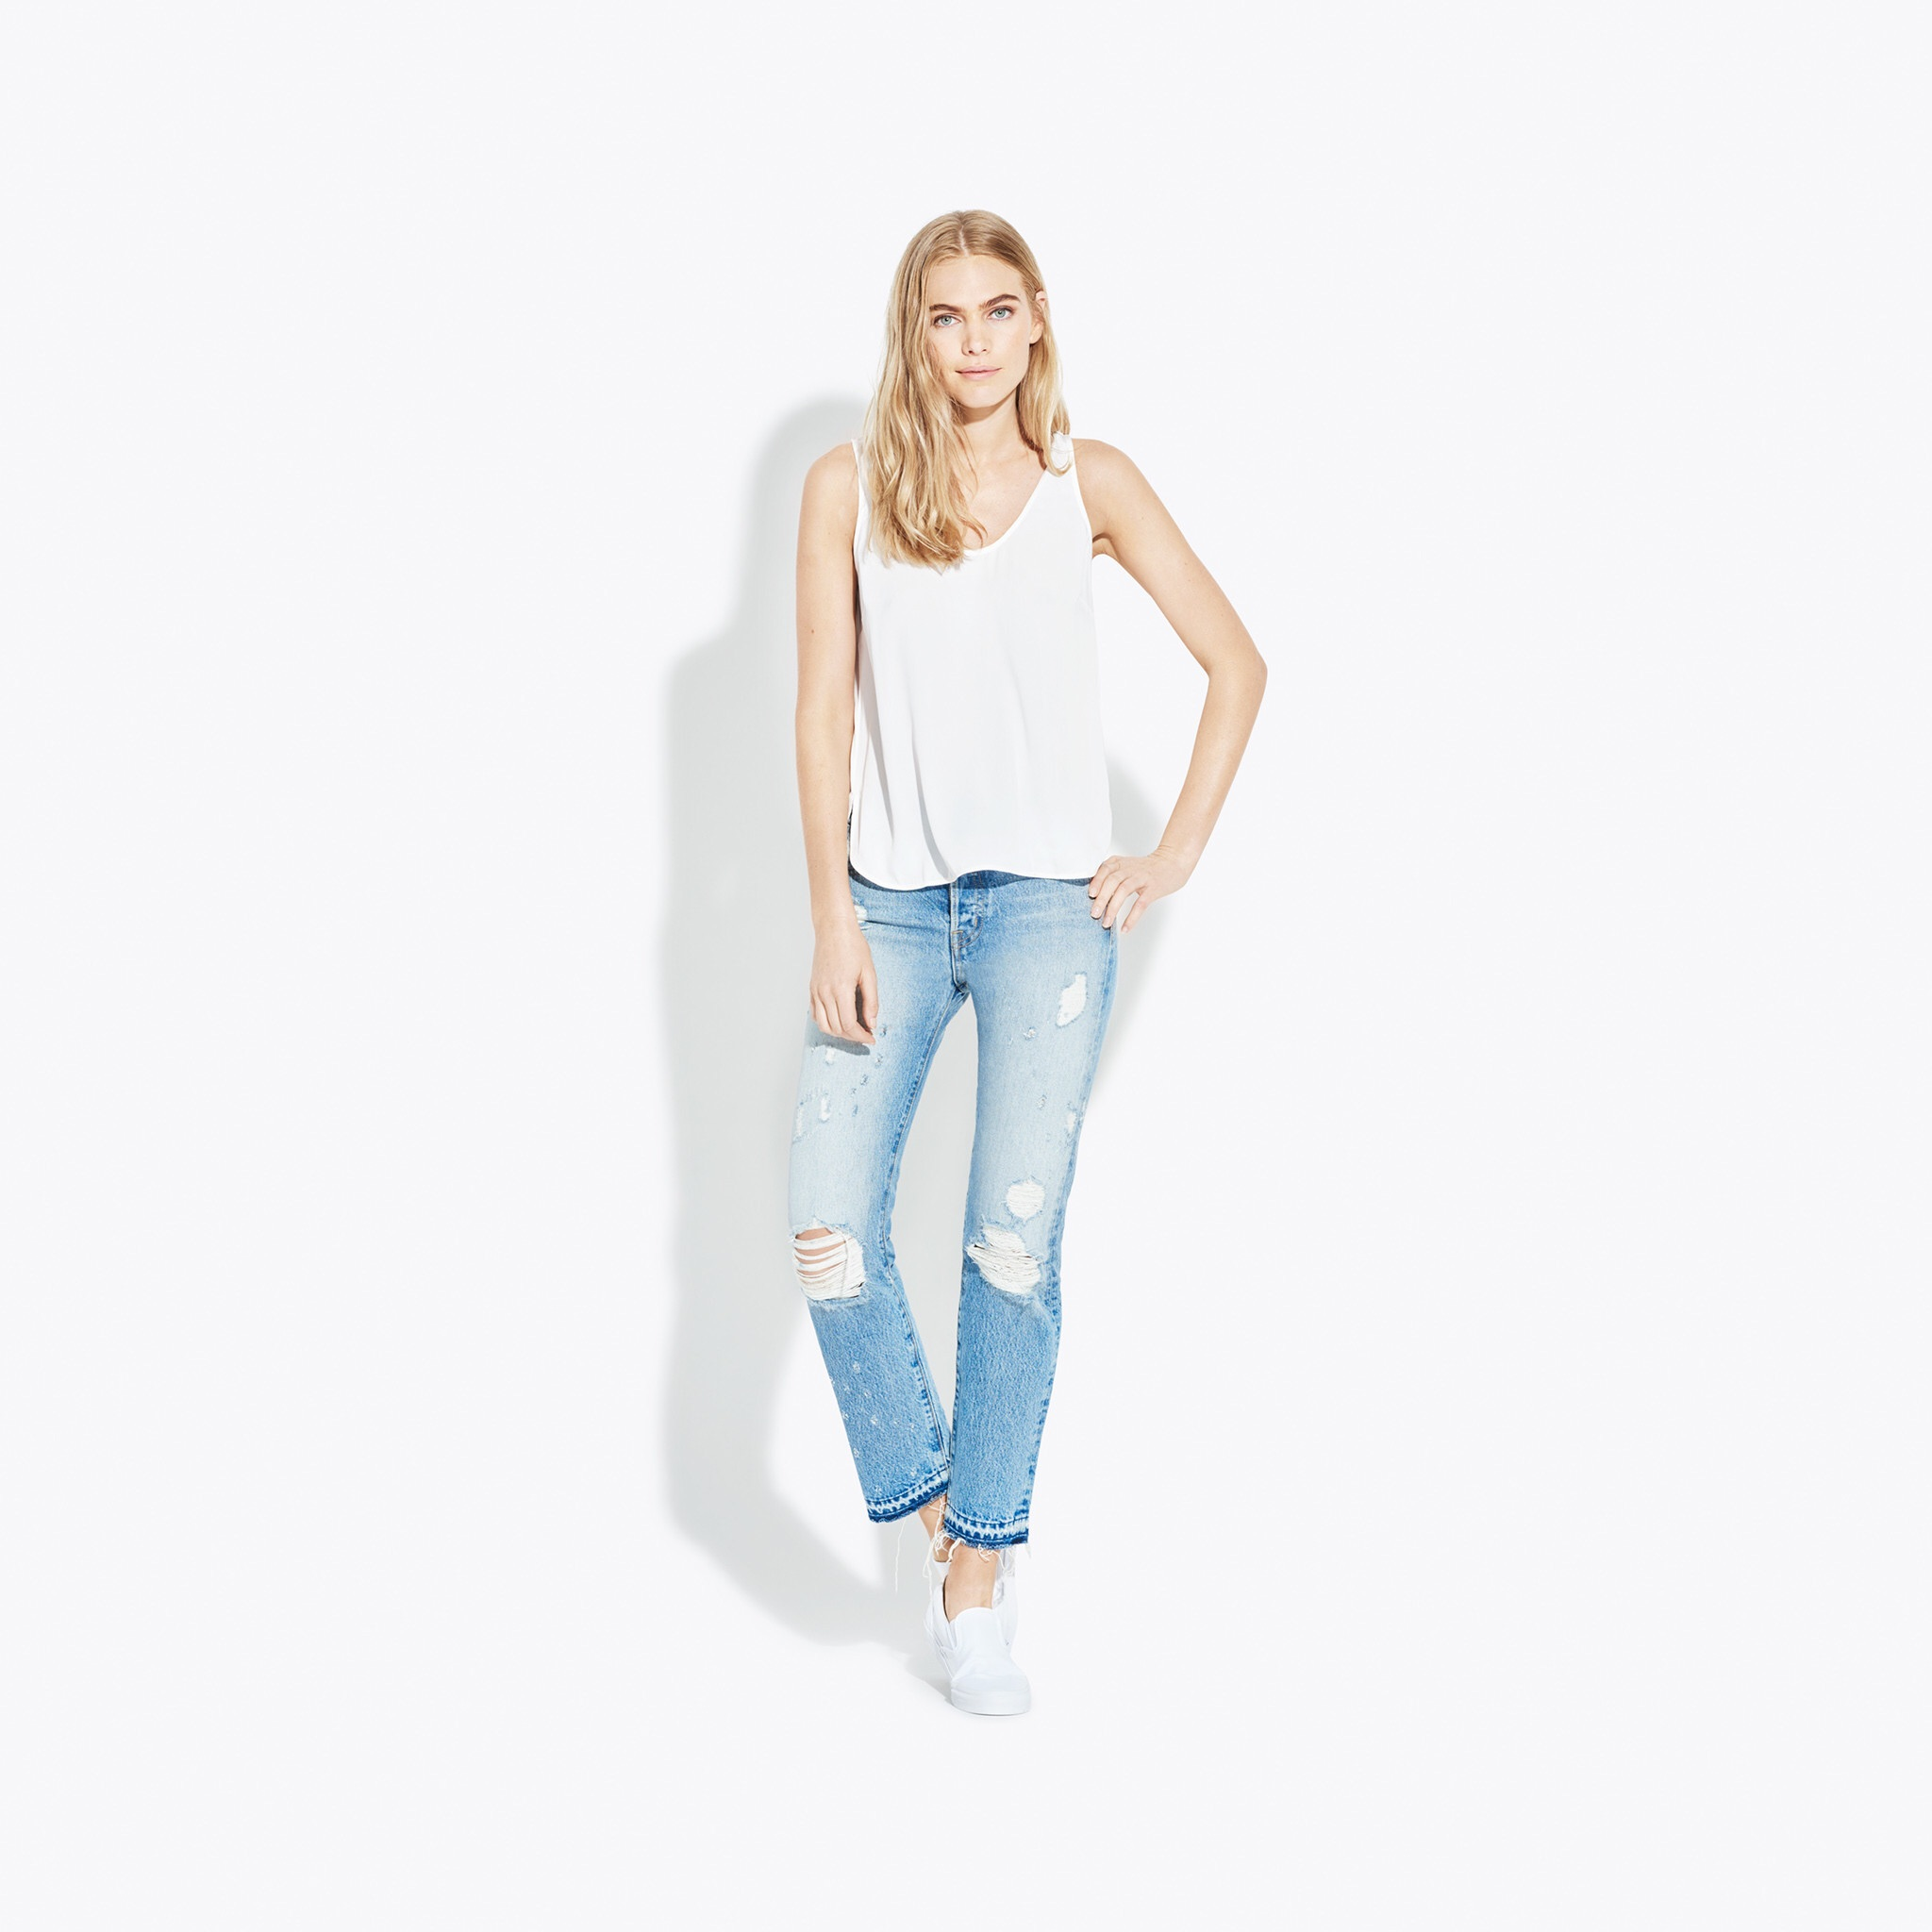 AYR The Form Jean   https:// www.ayr.com/products/the-form#19051002310